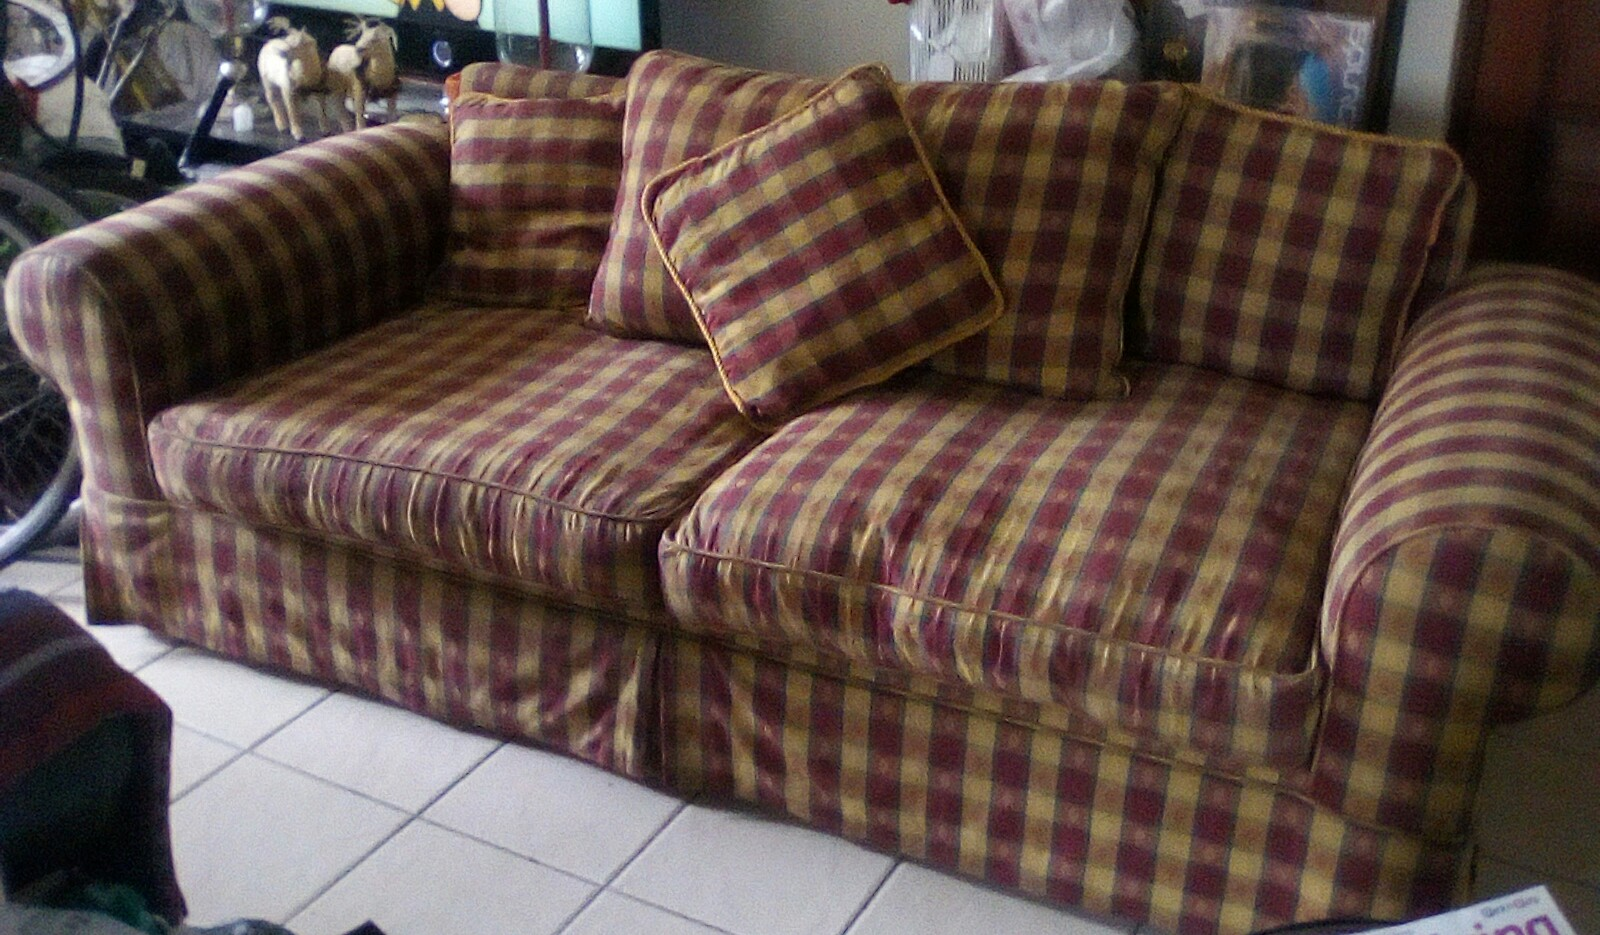 Large 4 seated couch